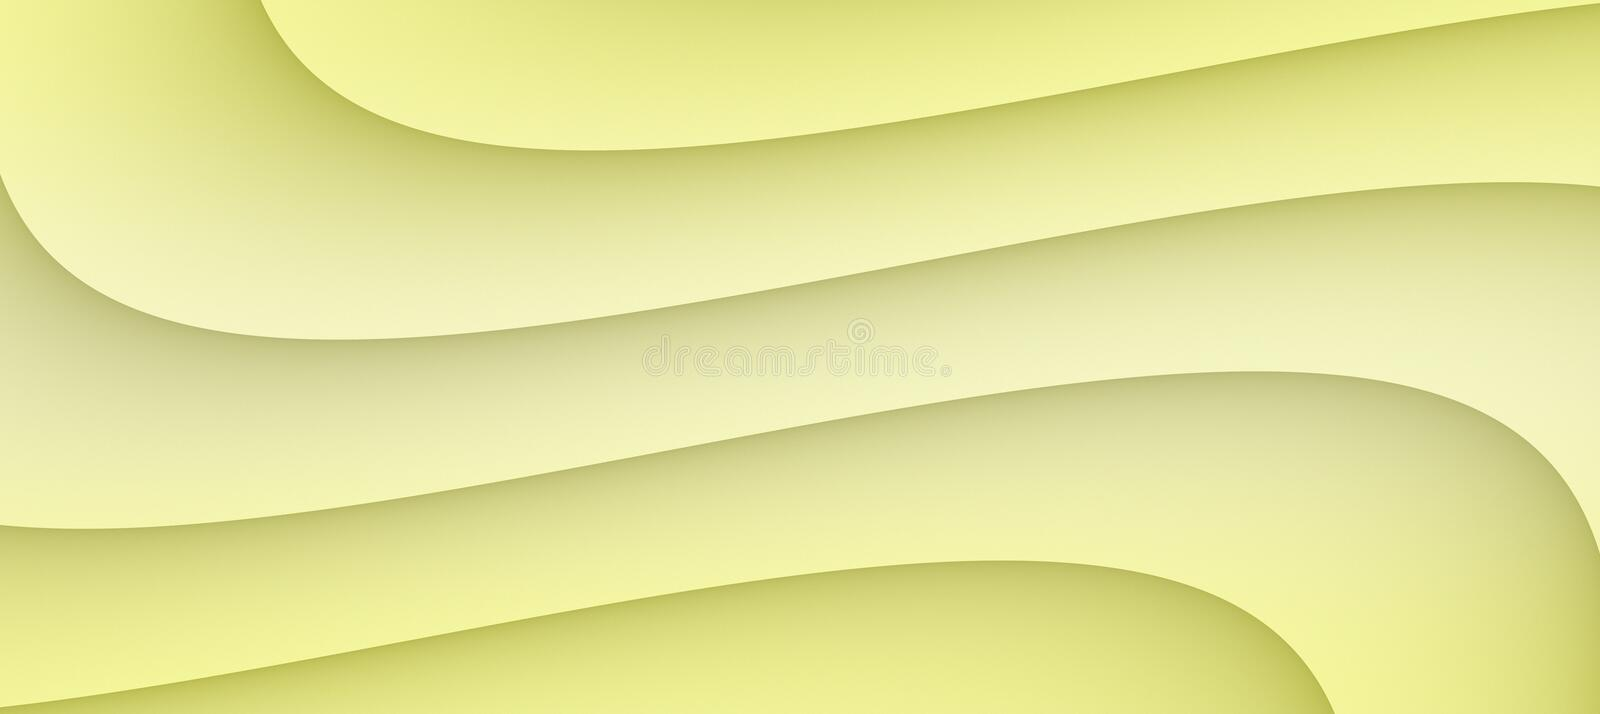 High resolution smooth flowing curves abstract background illustration in shades of soft pale yellow royalty free illustration